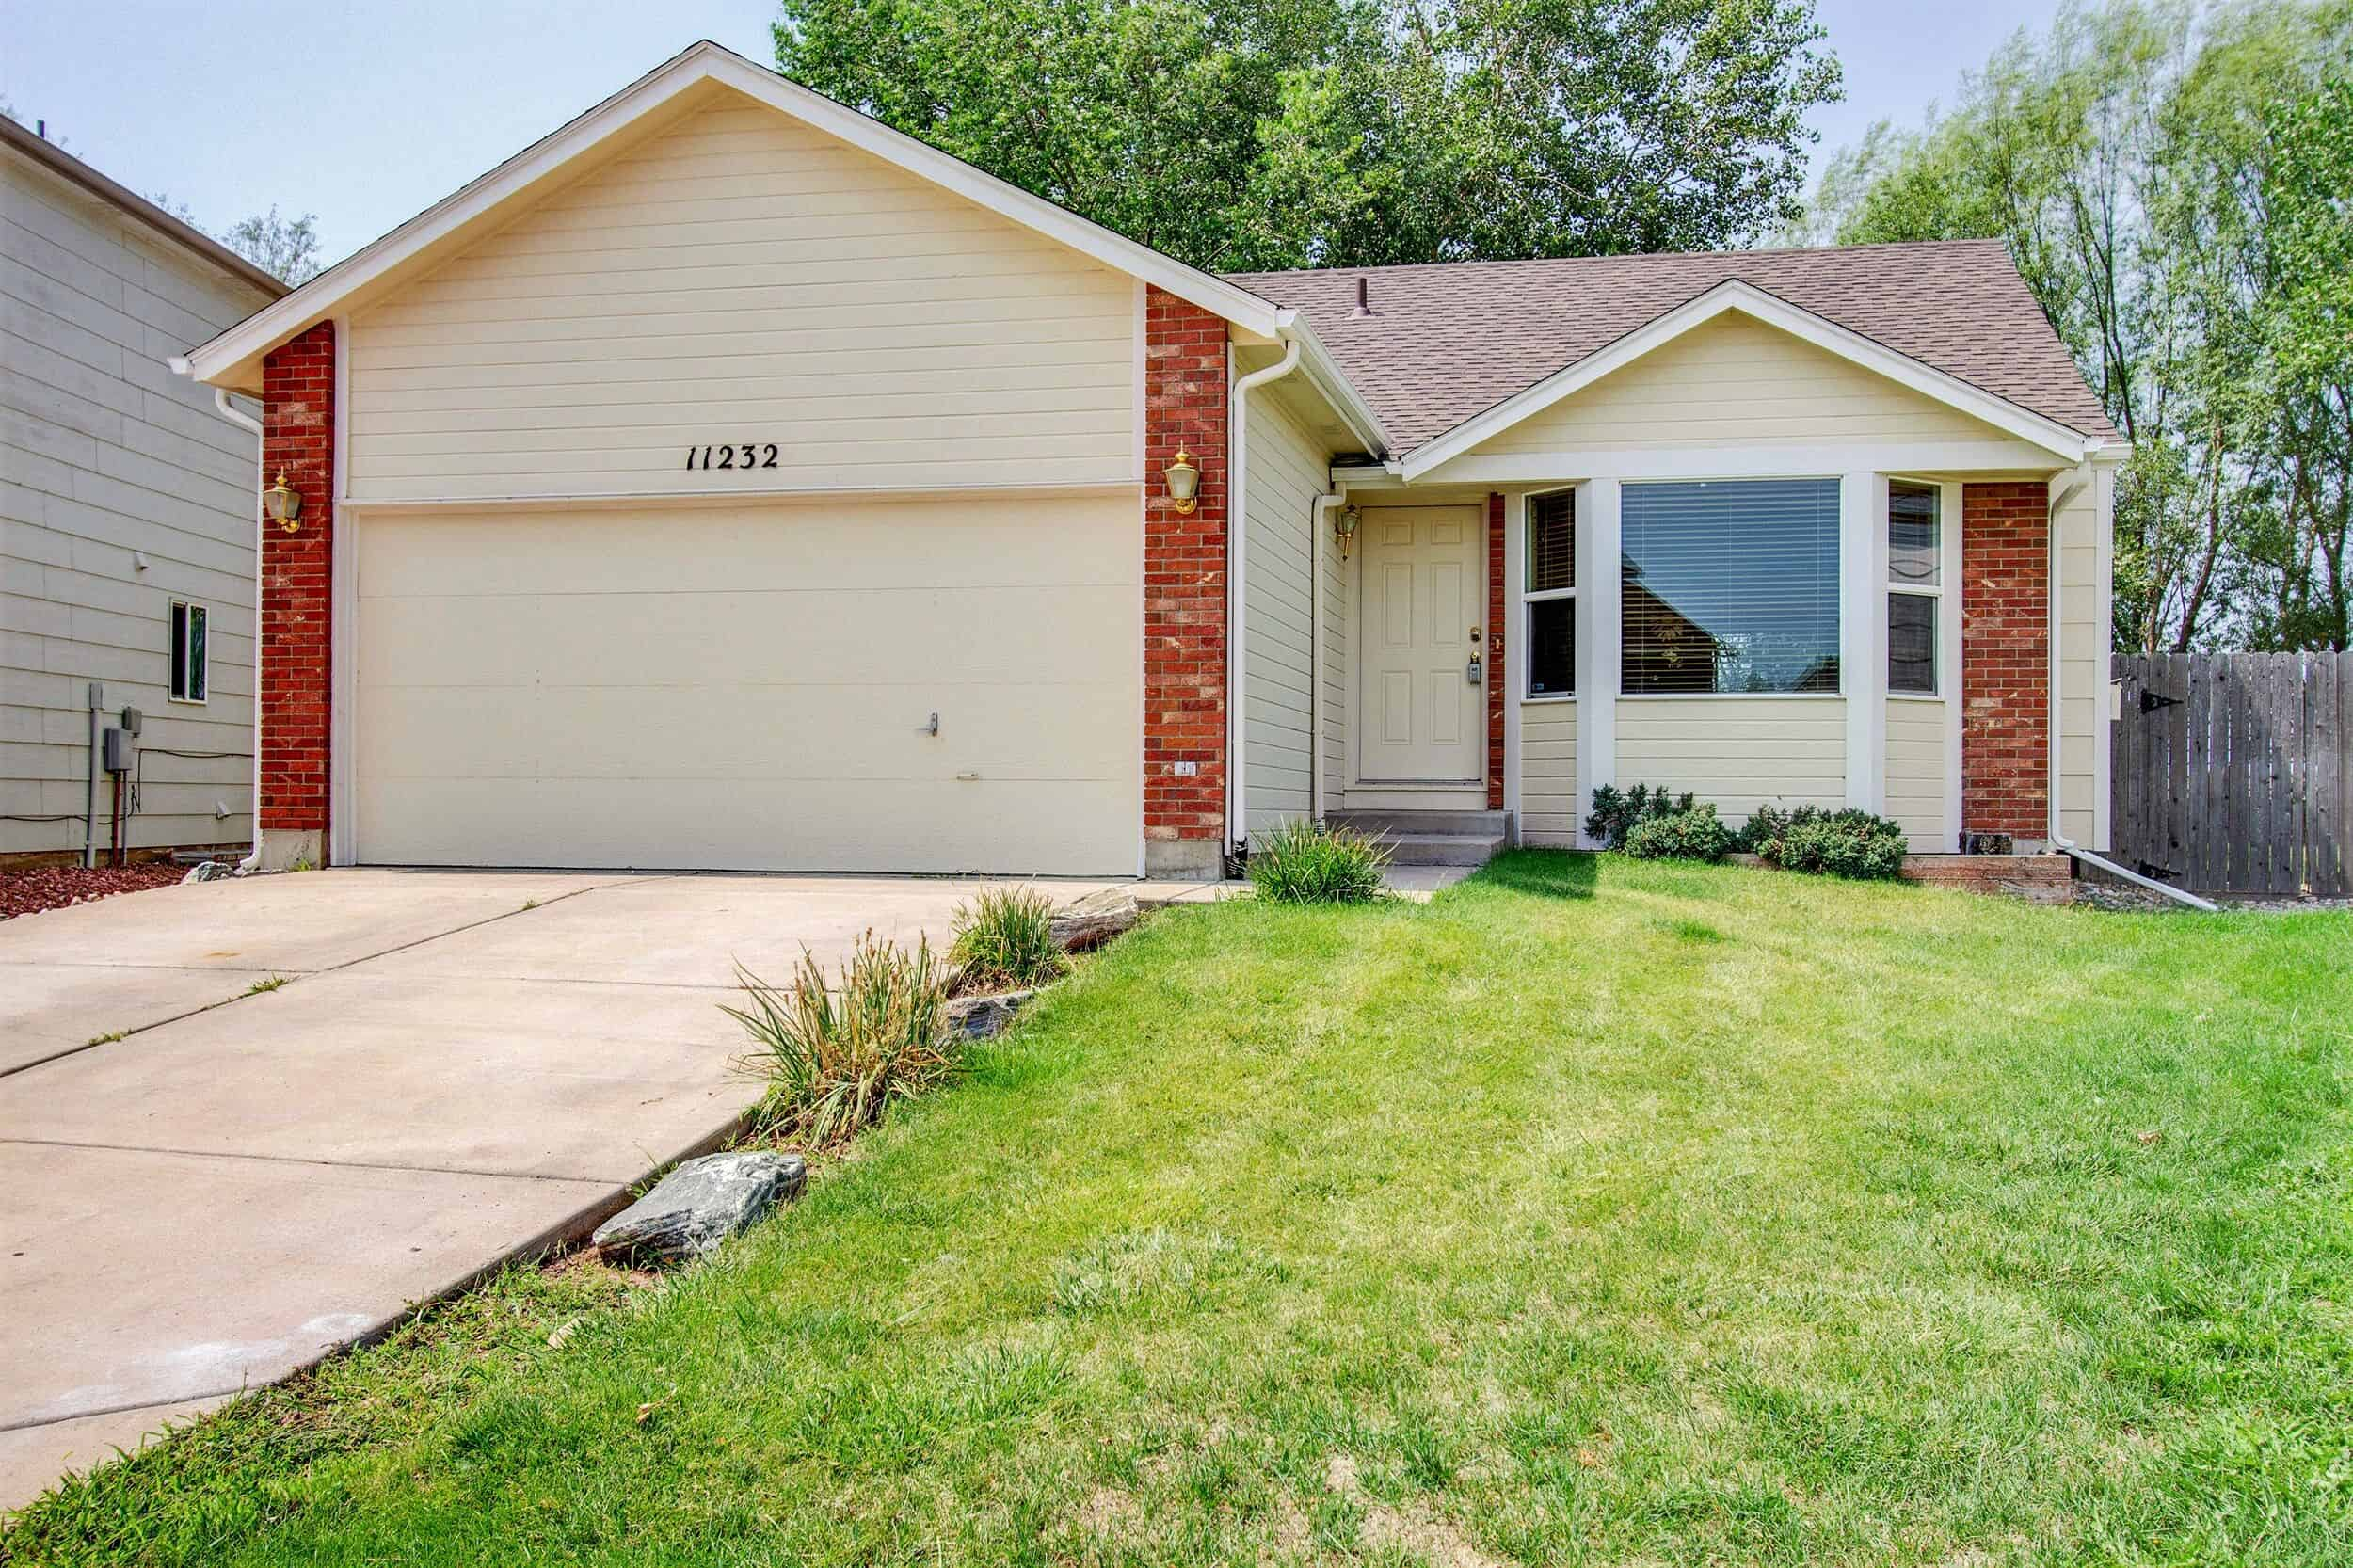 Move In Ready Rancher Close to Fort Carson